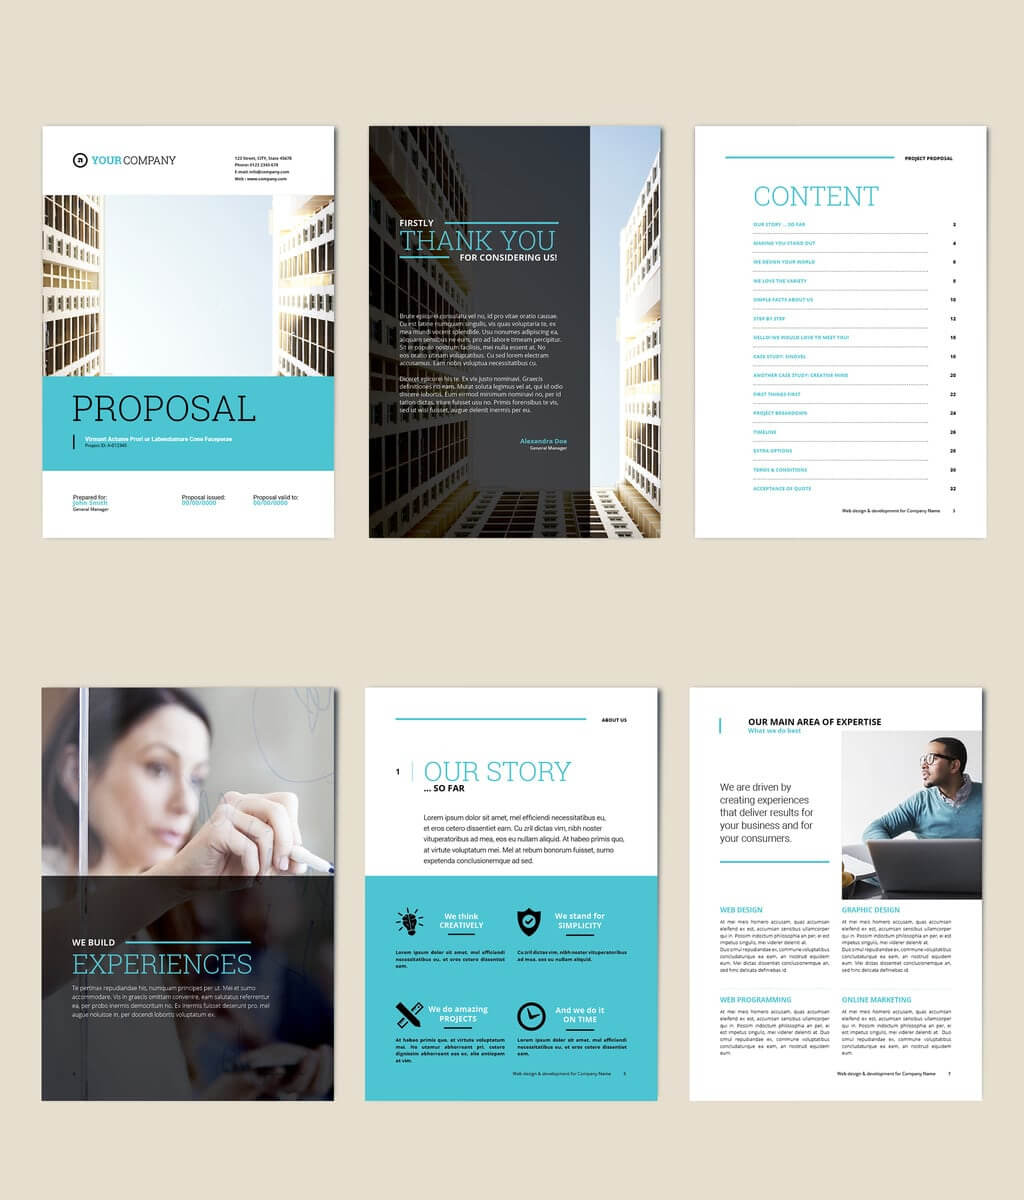 75 Fresh Indesign Templates And Where To Find More for Free Indesign Report Templates